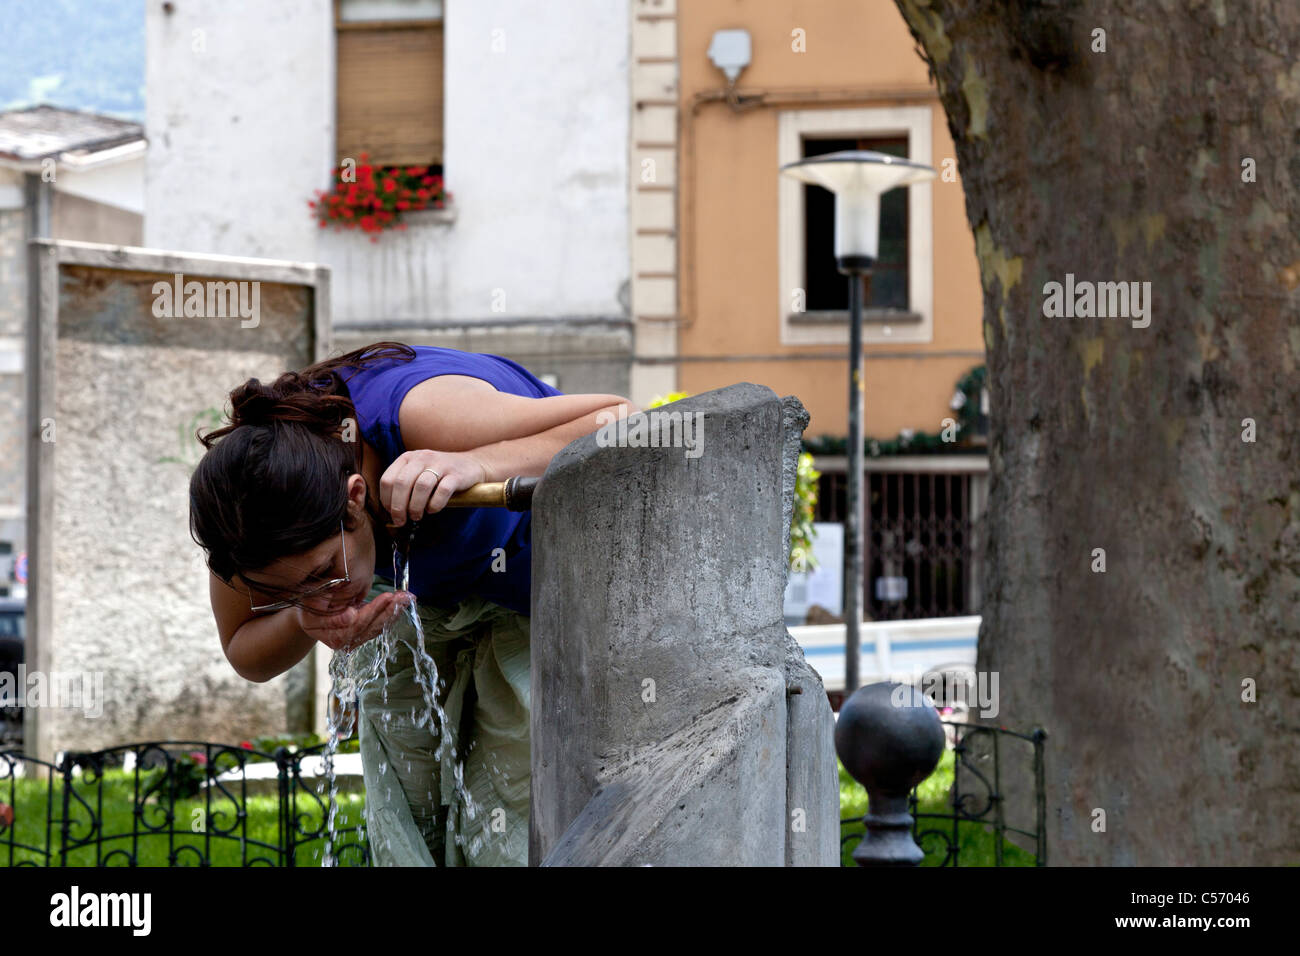 A young woman quenching her thirst at a fountain, in Aosta (Italy). Jeune femme étanchant sa soif à une - Stock Image